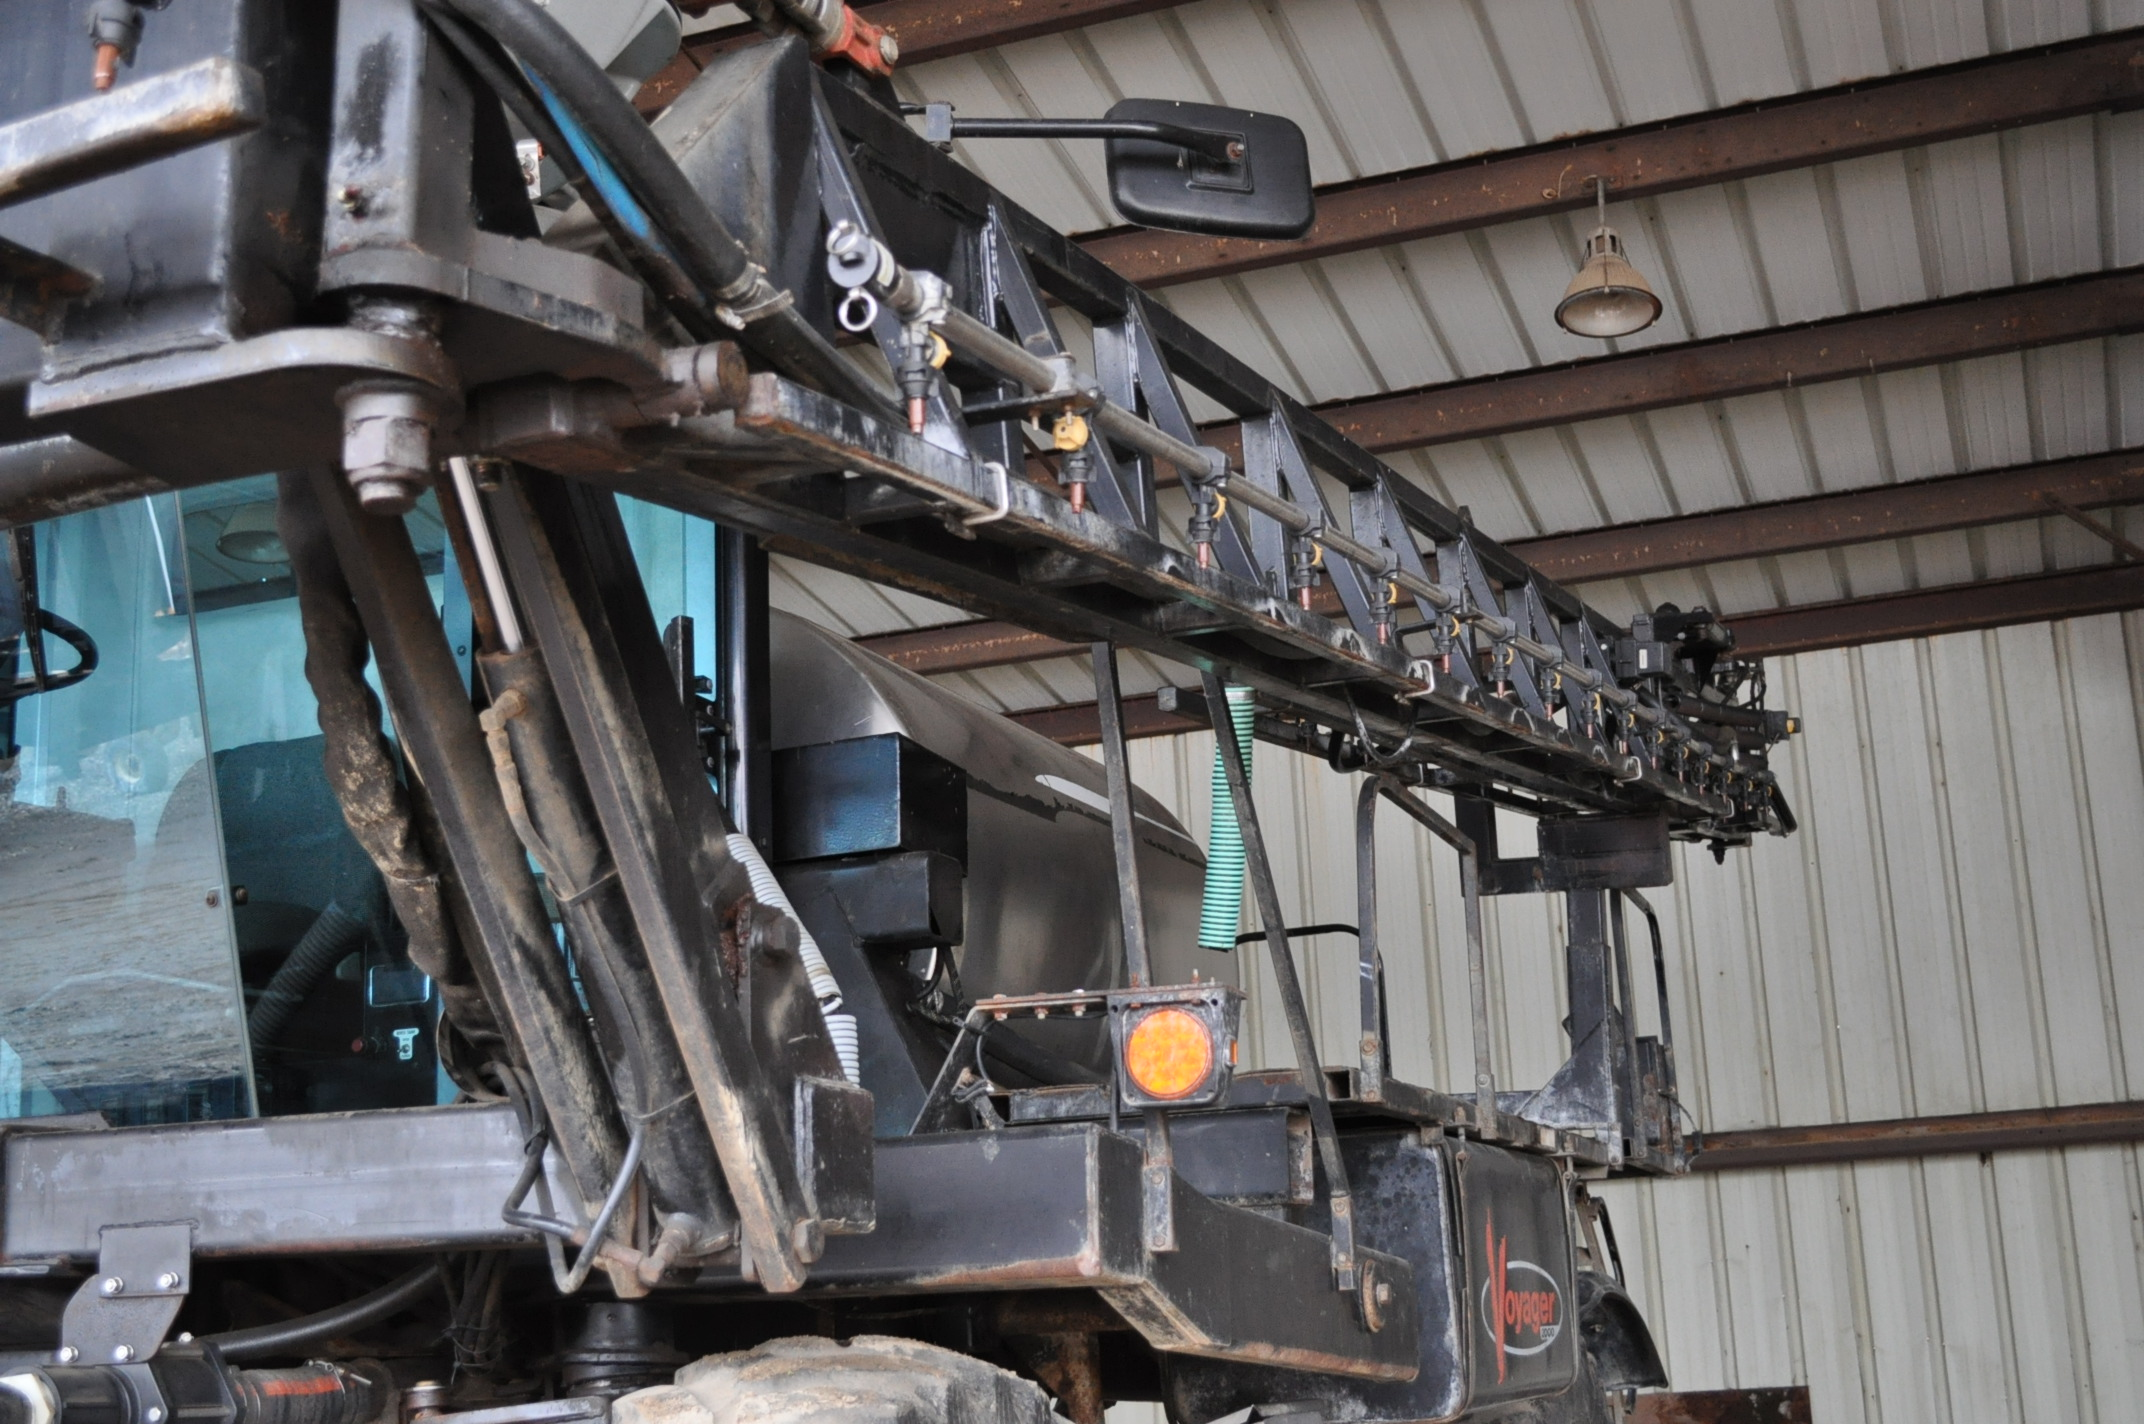 """Silver Wheels Voyager 2000 sprayer, 14.9R46 tires, hydrostatic, 90' boom, 15"""" nozzle spacing, 1000 - Image 12 of 21"""